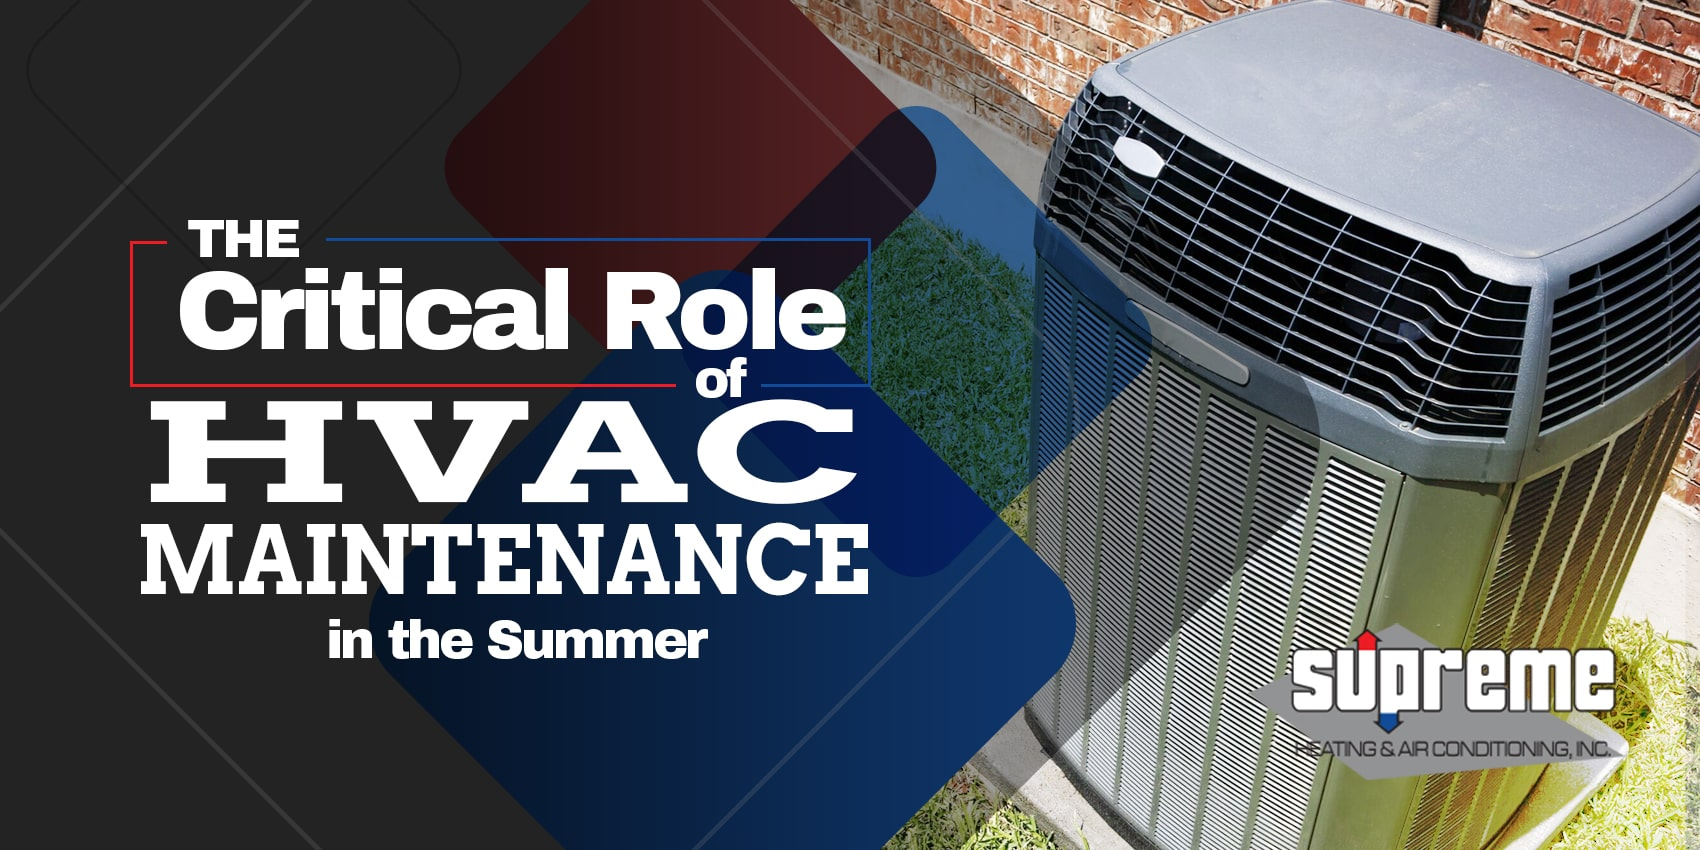 The Critical Role of HVAC Maintenance in the Summer